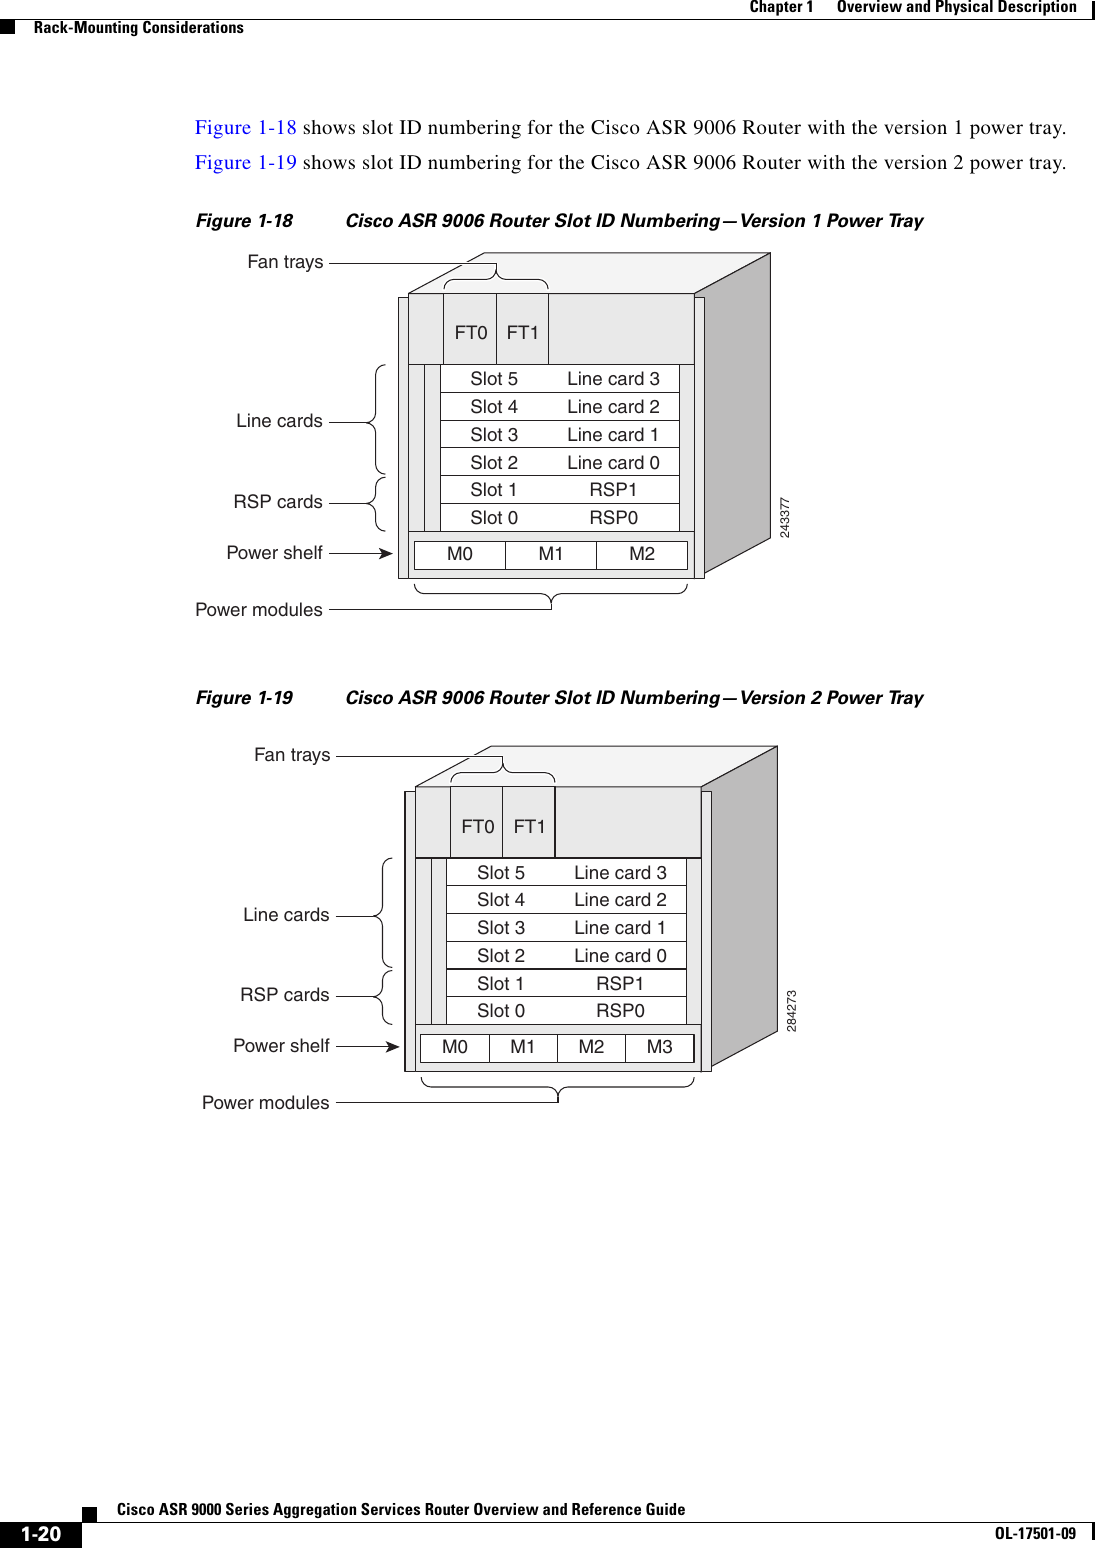 Cisco Systems 9010 Users Manual ASR 9000 Series Aggregation